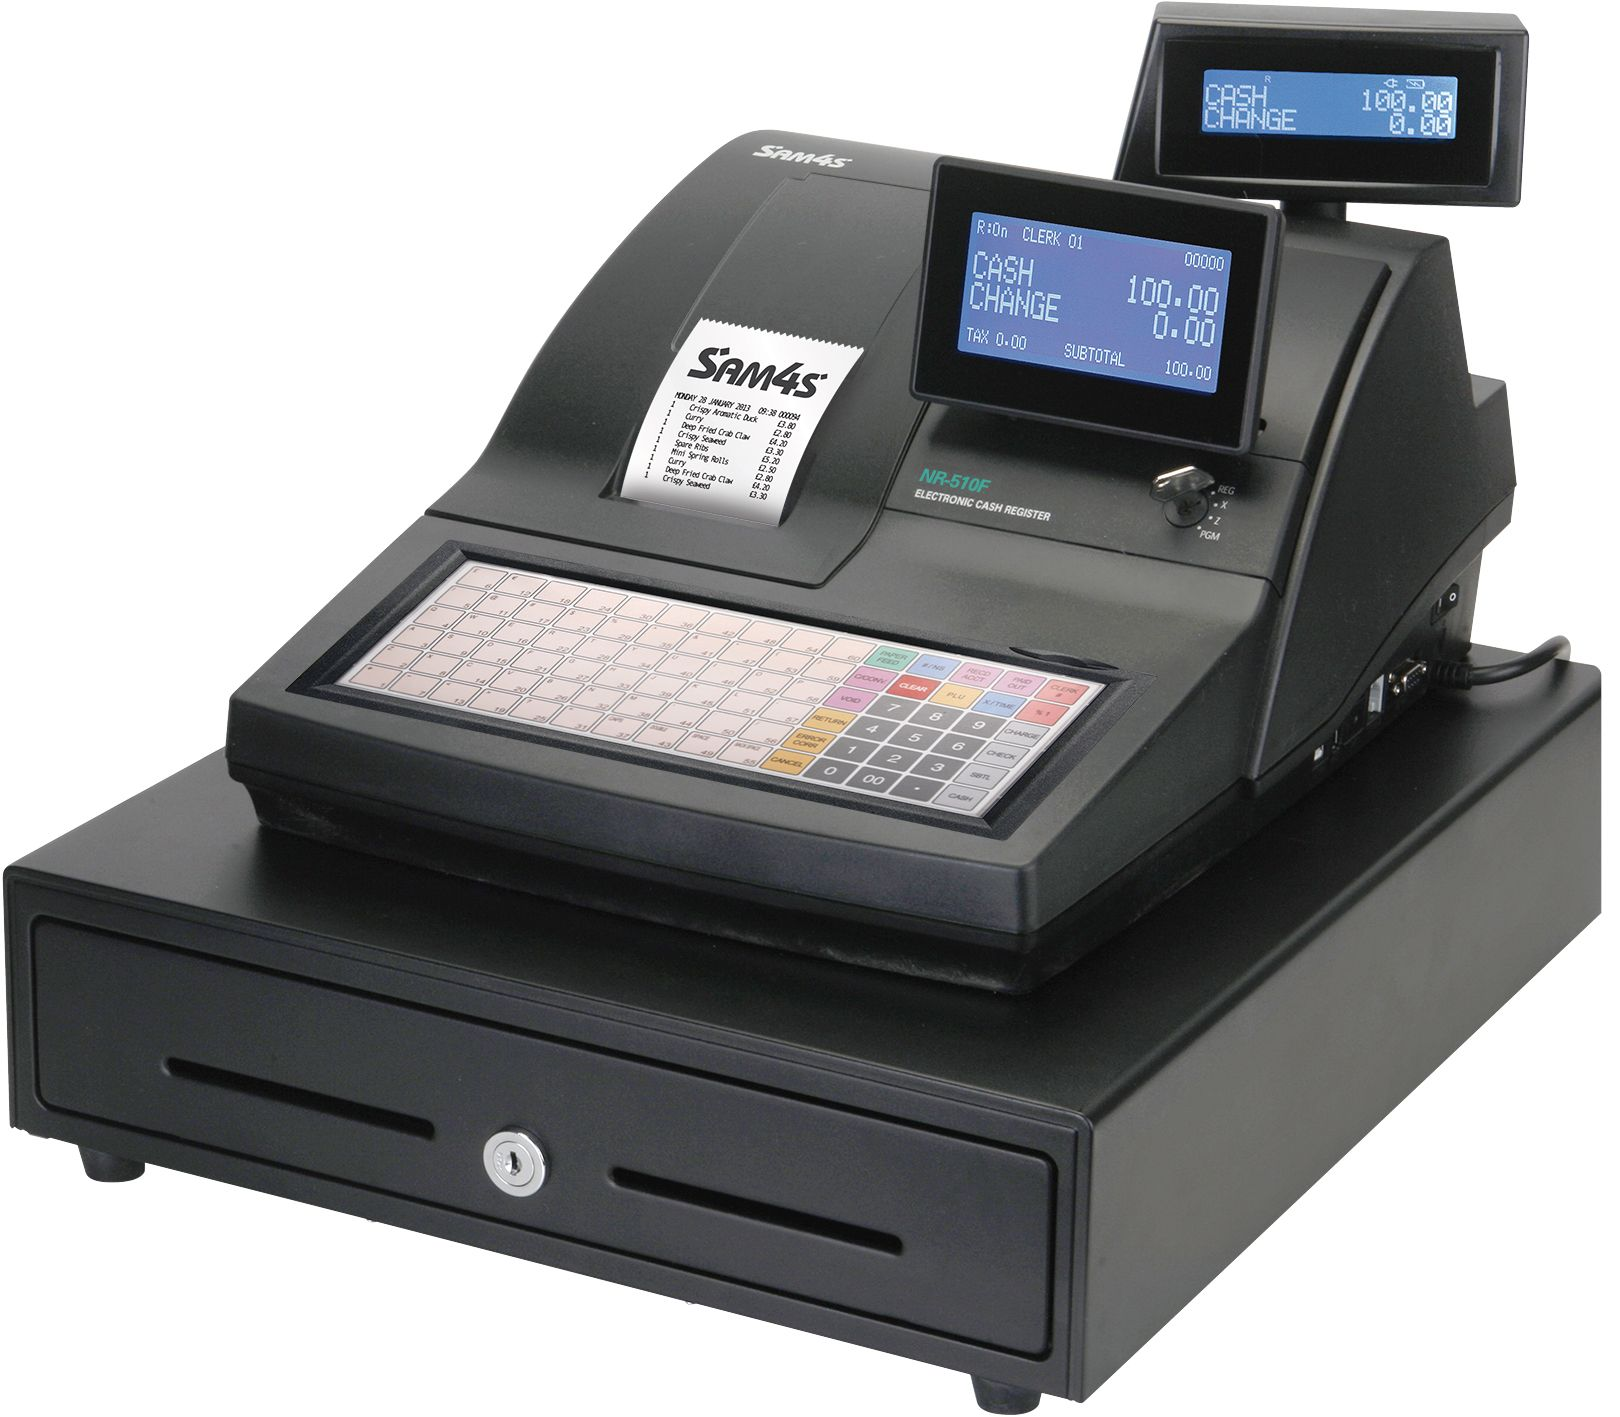 Sam4s NR-510F Cash Register - Scanning Bundle 1 ...